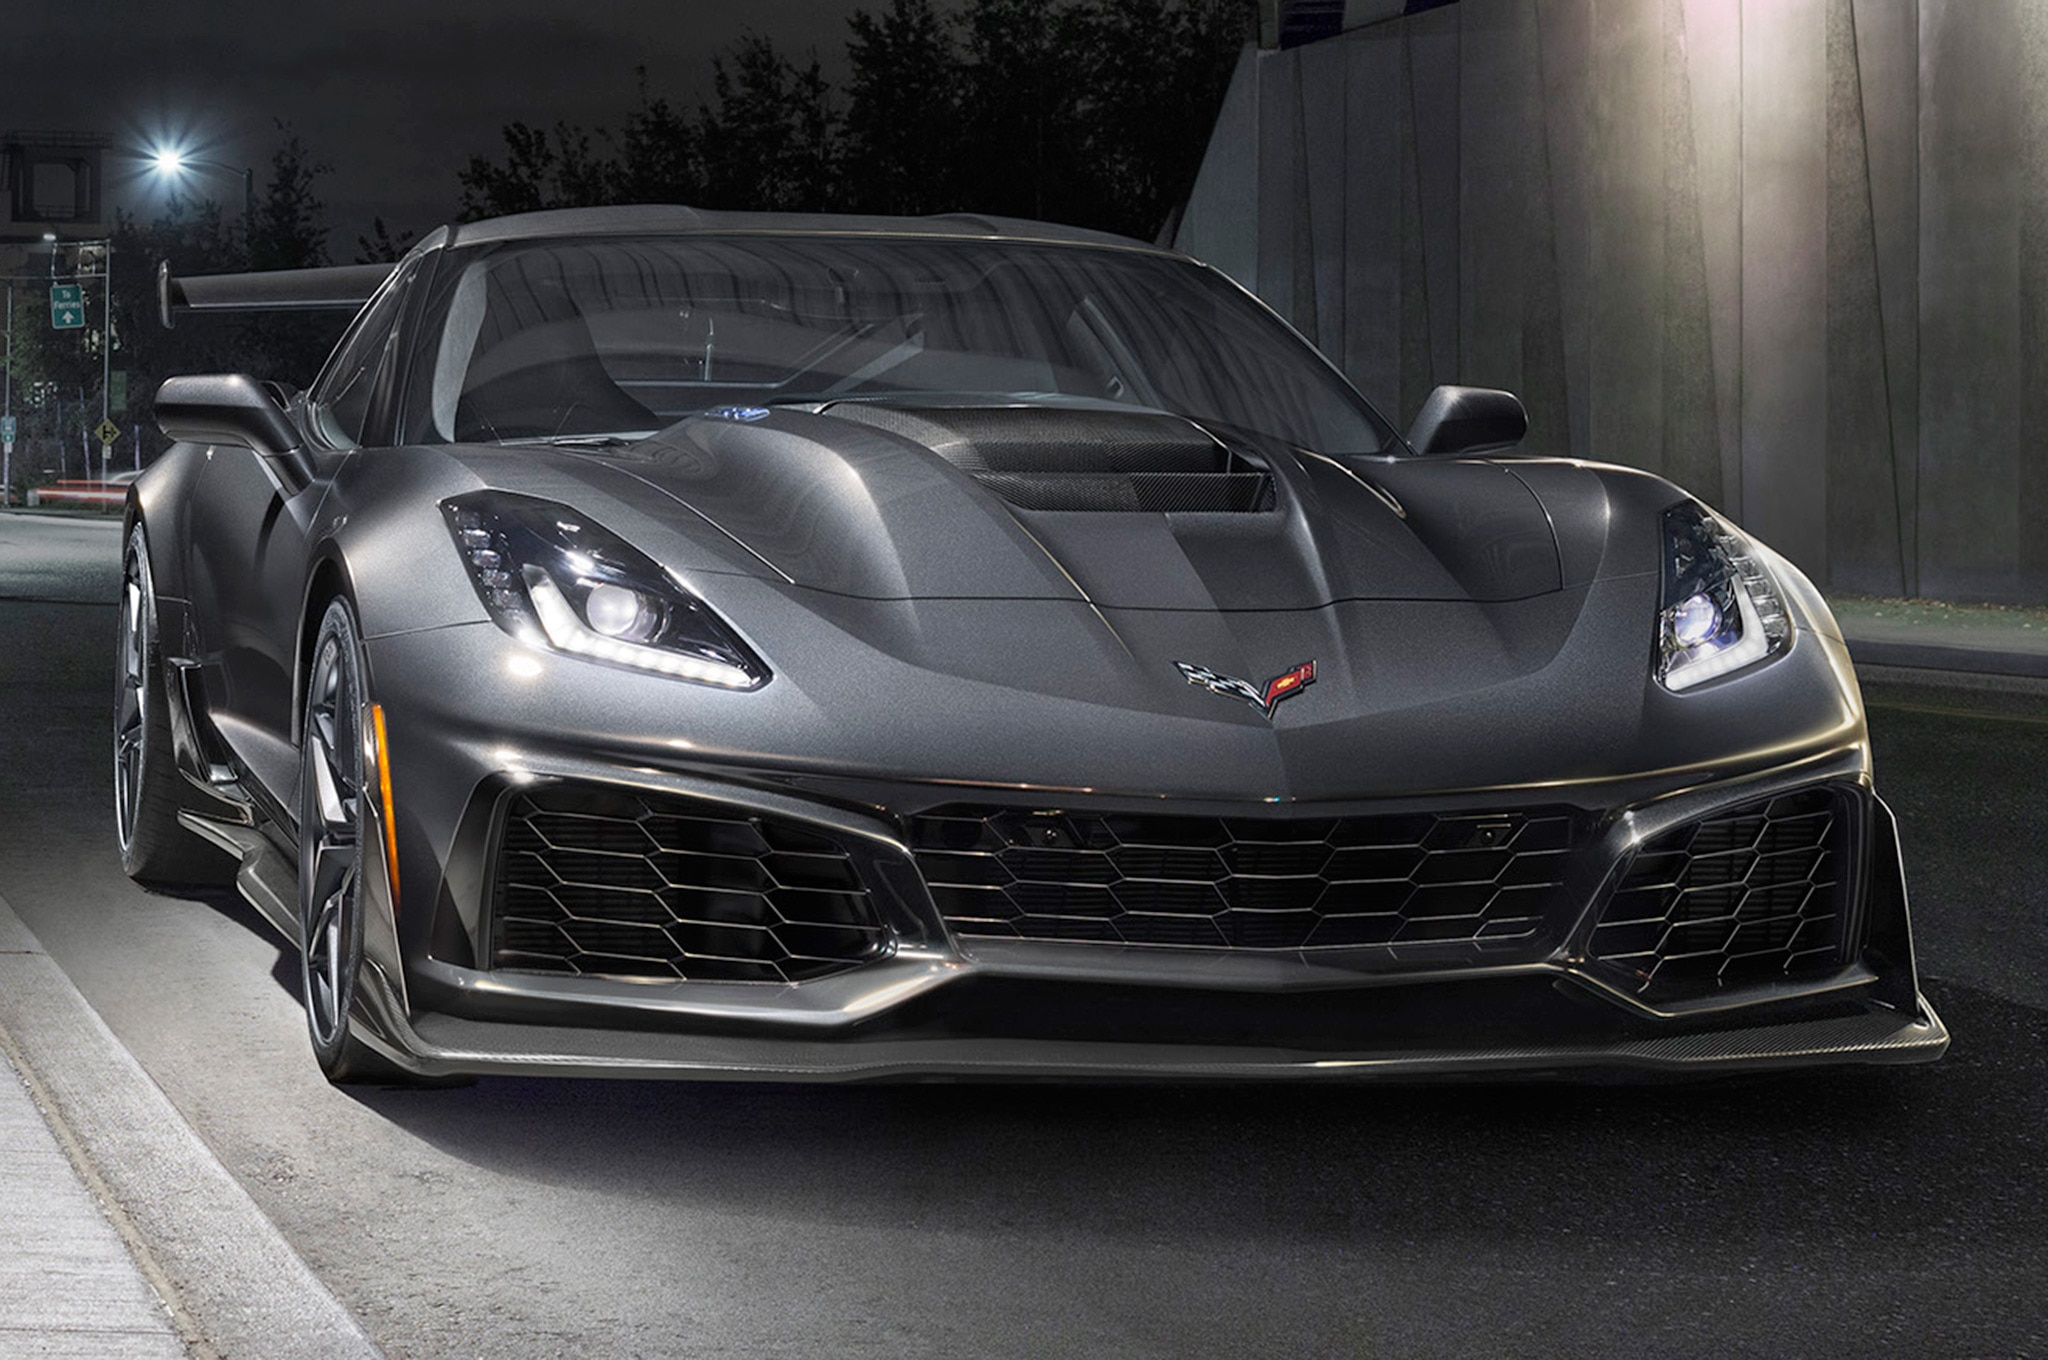 Chevrolet unveils all-new Corvette ZR1